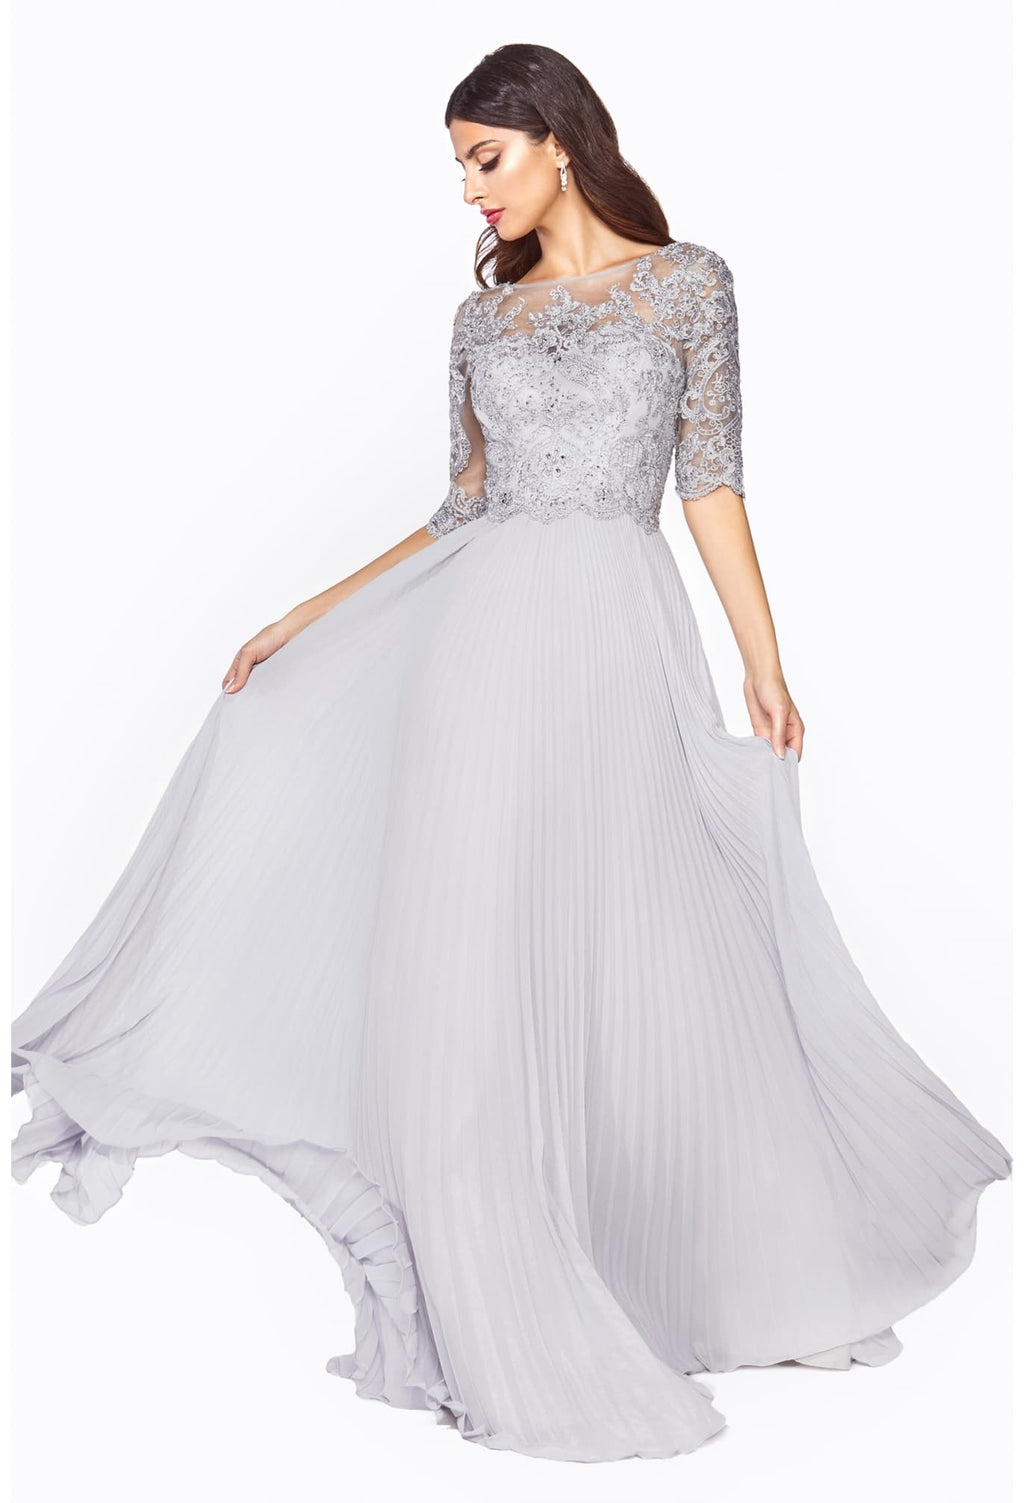 A-line dress with pleated chiffon skirt and lace three-quarter sleeve bodice